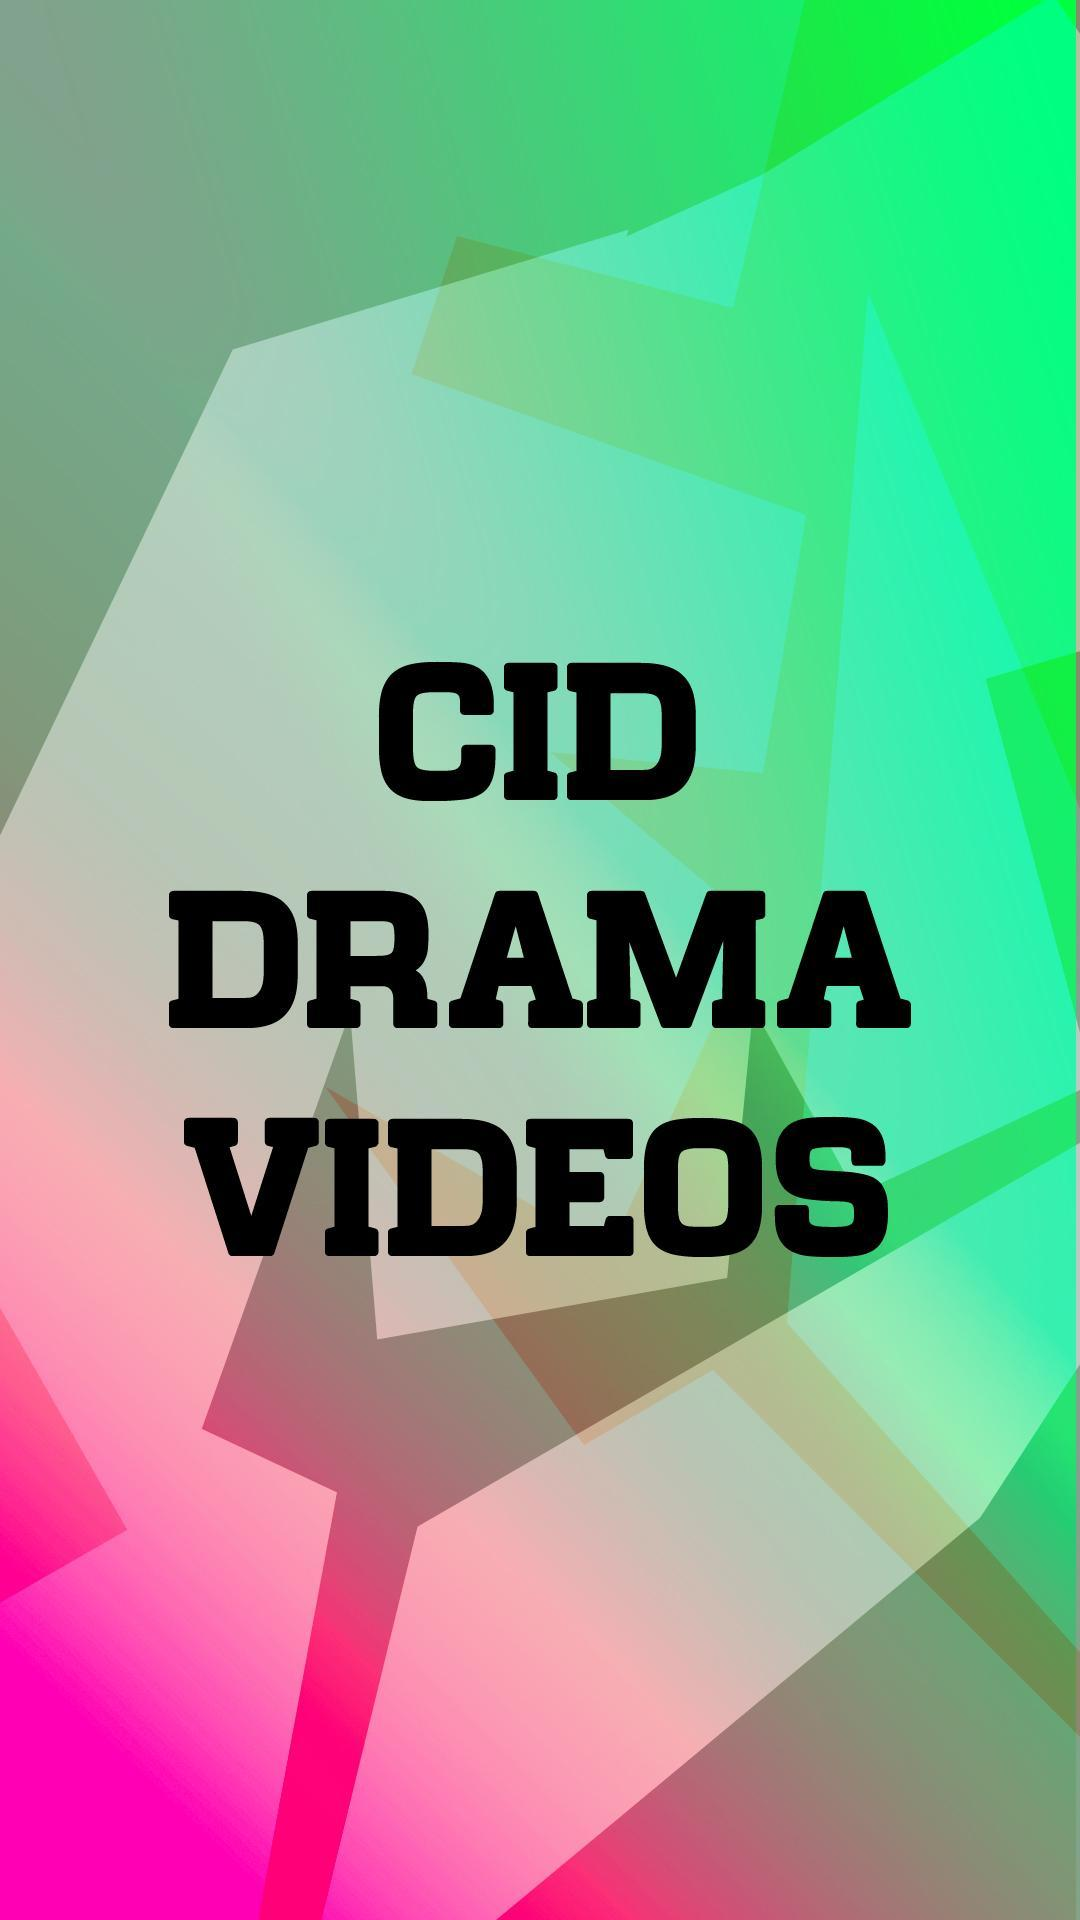 CID Serial for Android - APK Download